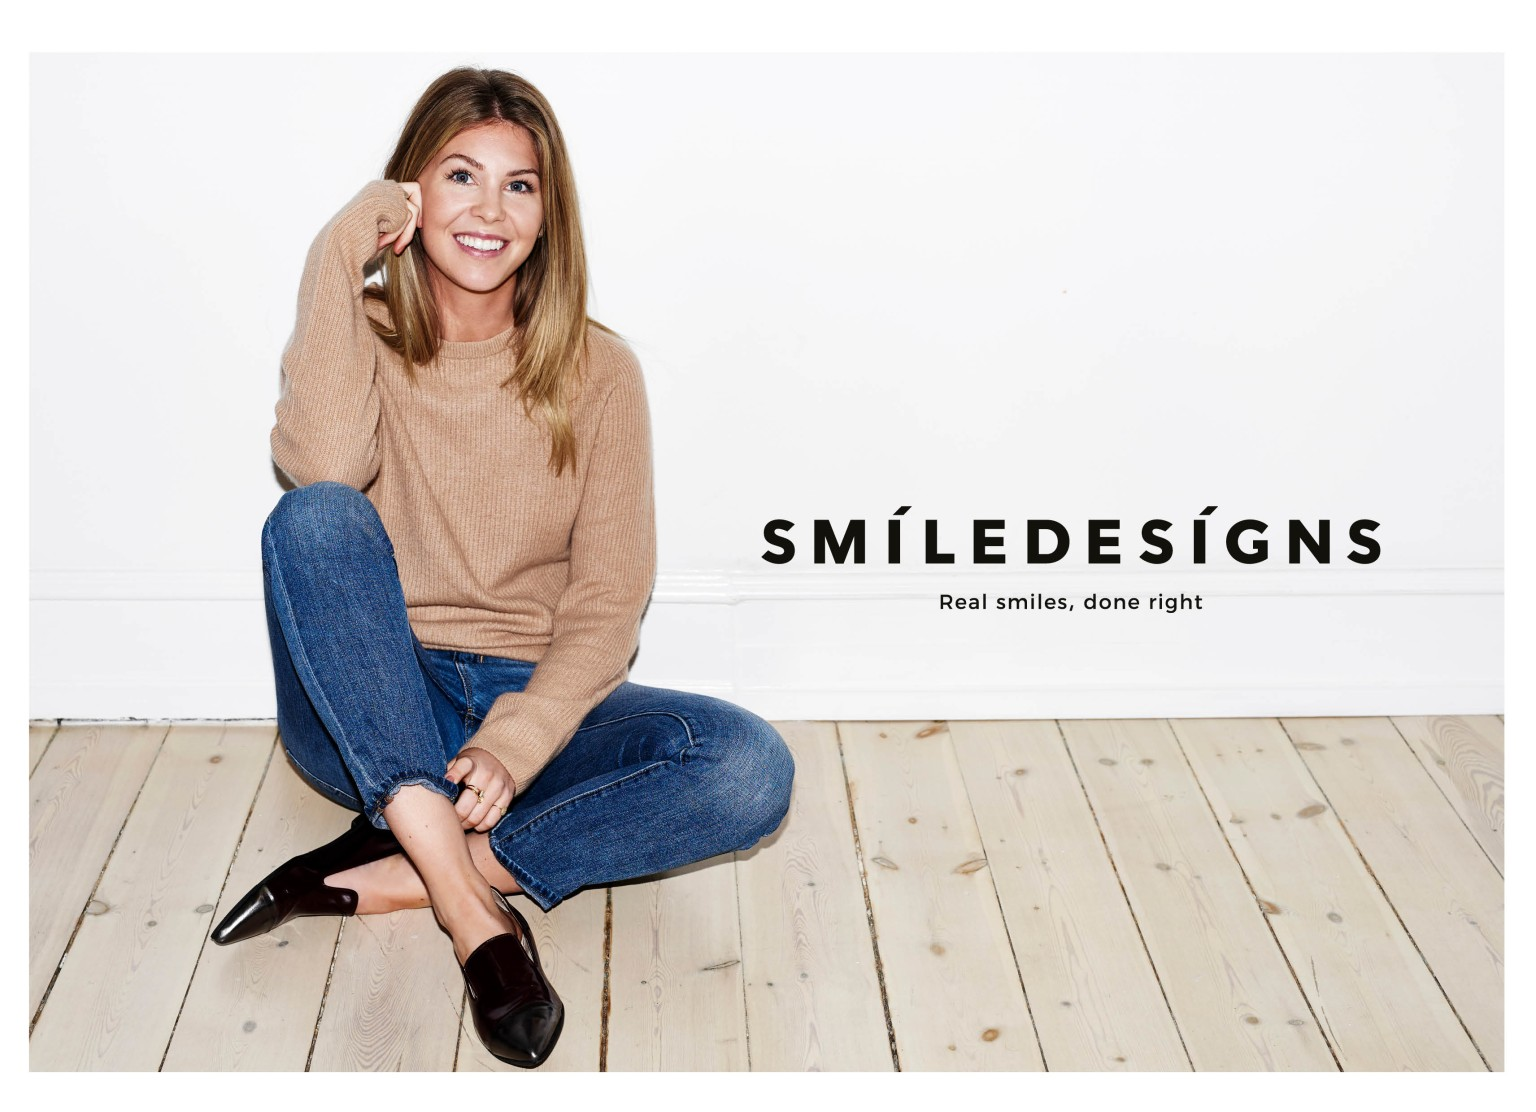 Smiledesigns Brand Strategy